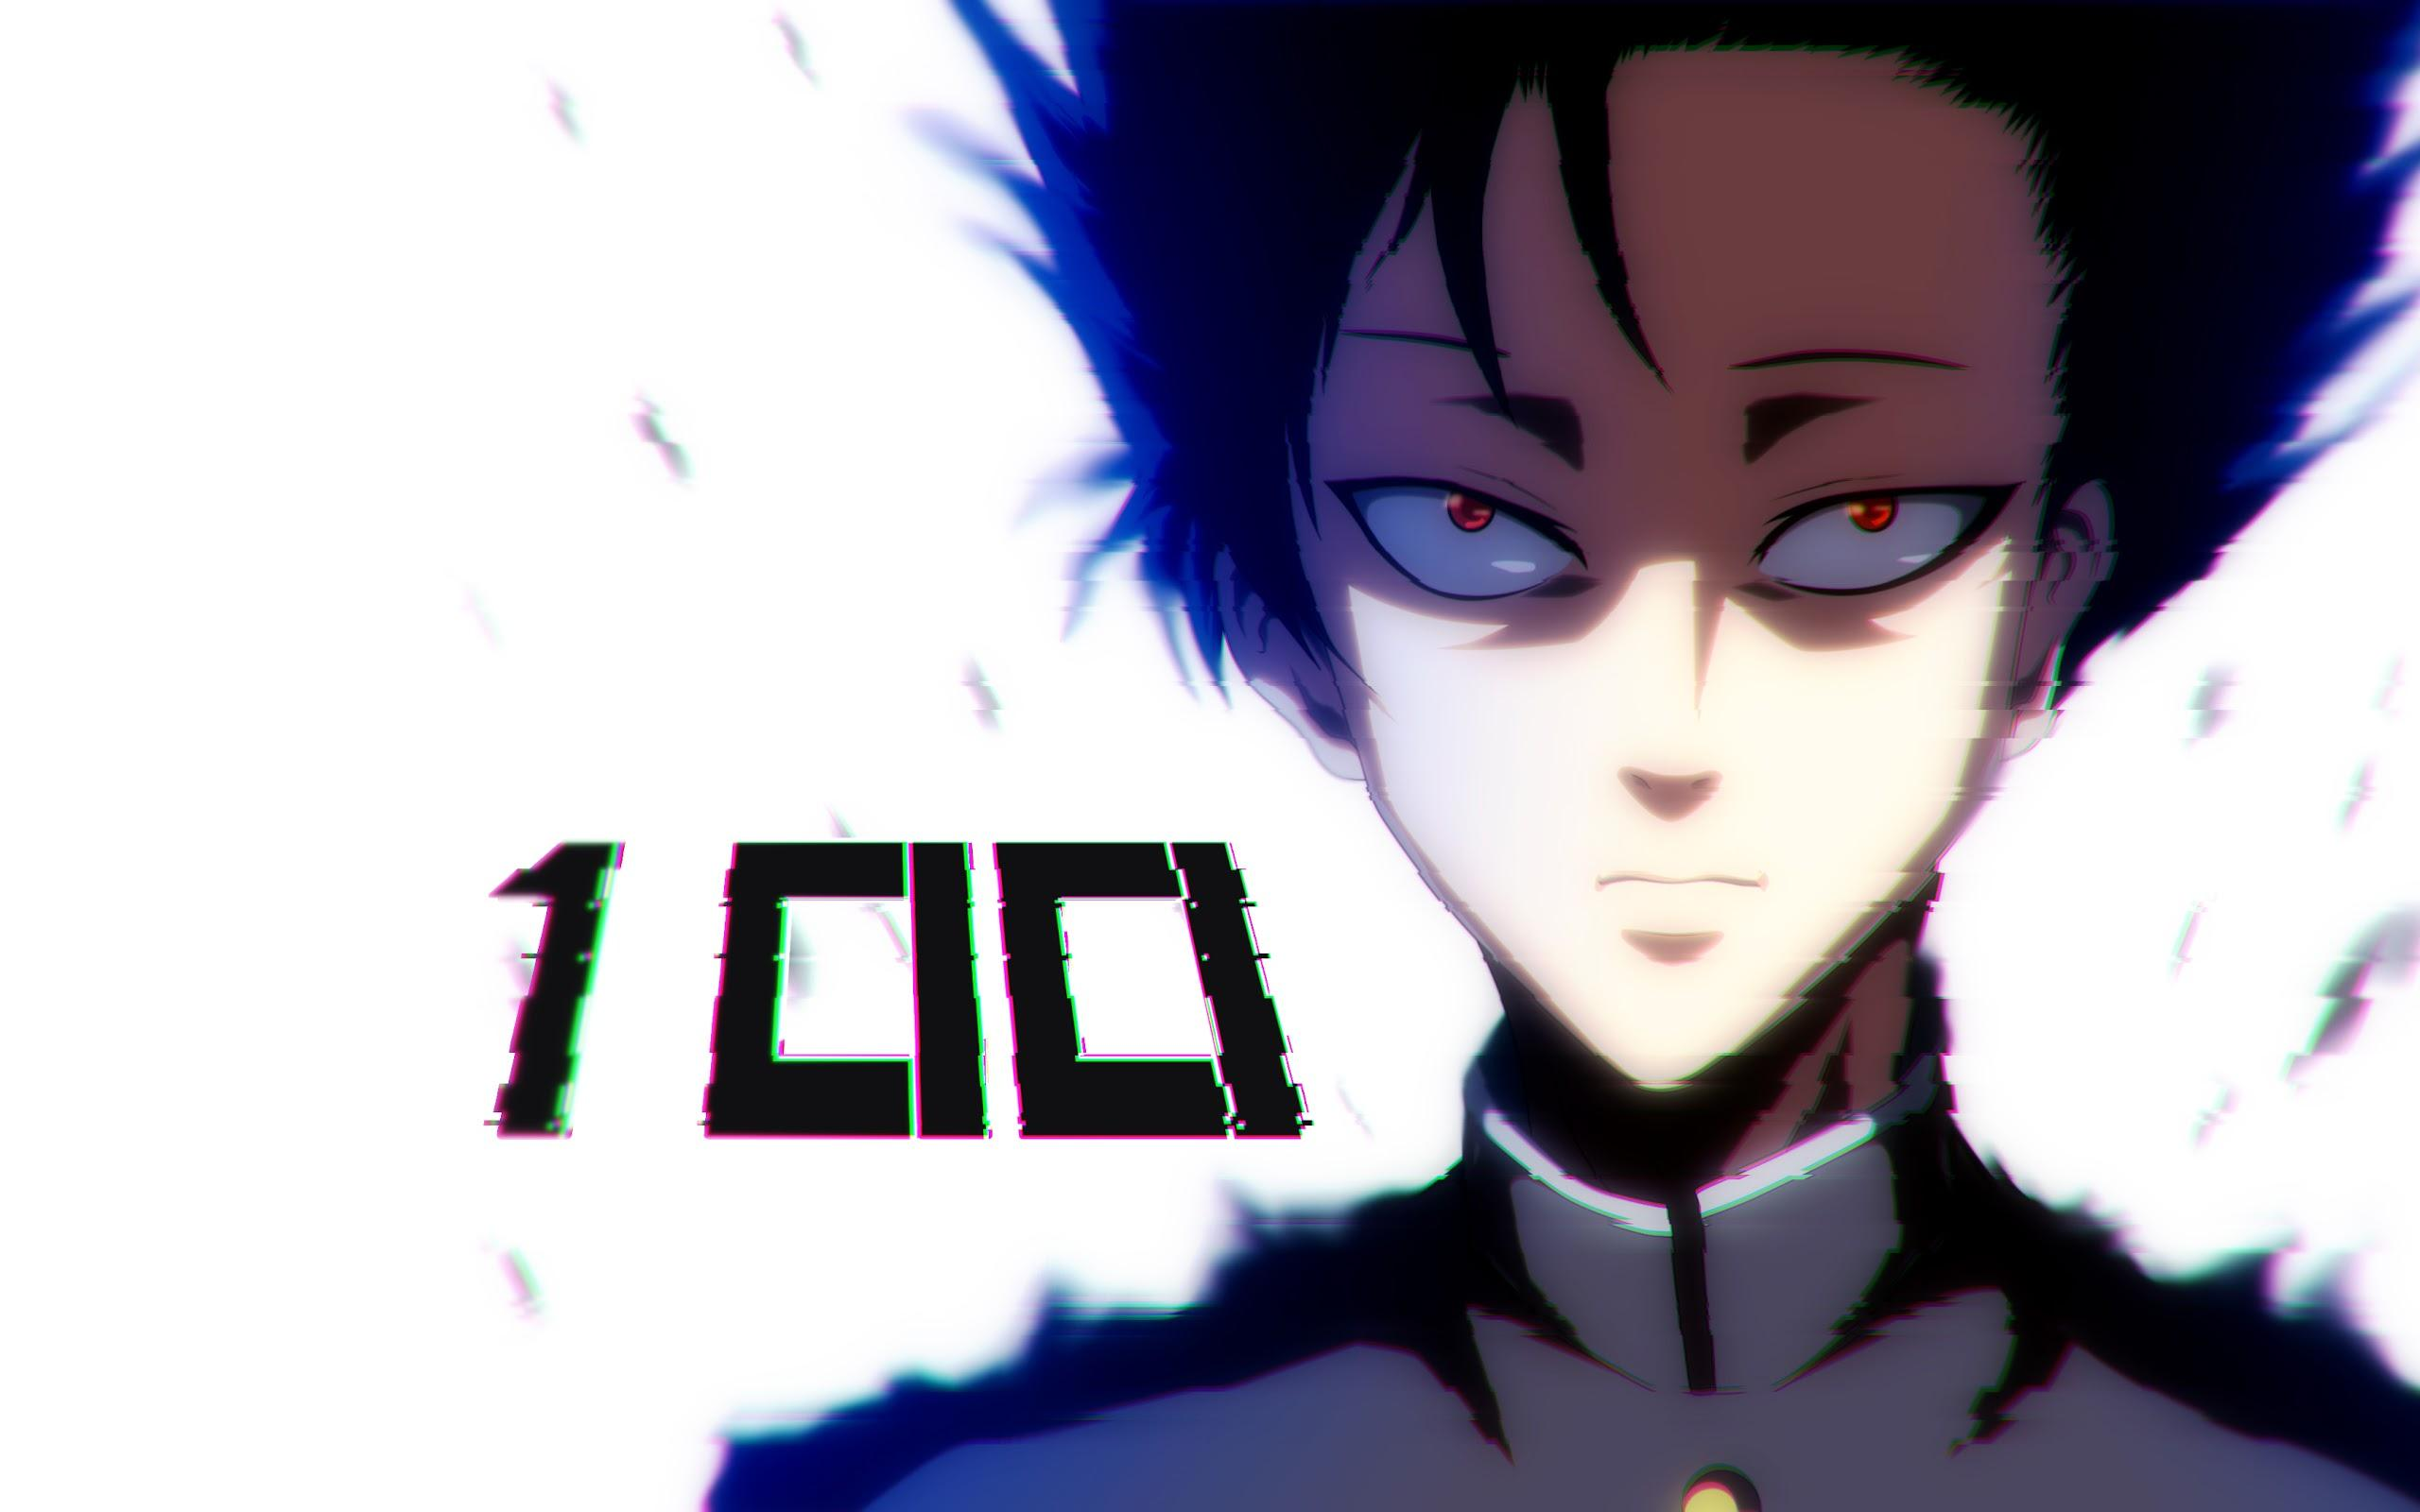 Mob Psycho 100, 100% Rage, Shigeo Kageyama, 4K, 3840x2160, Wallpapers